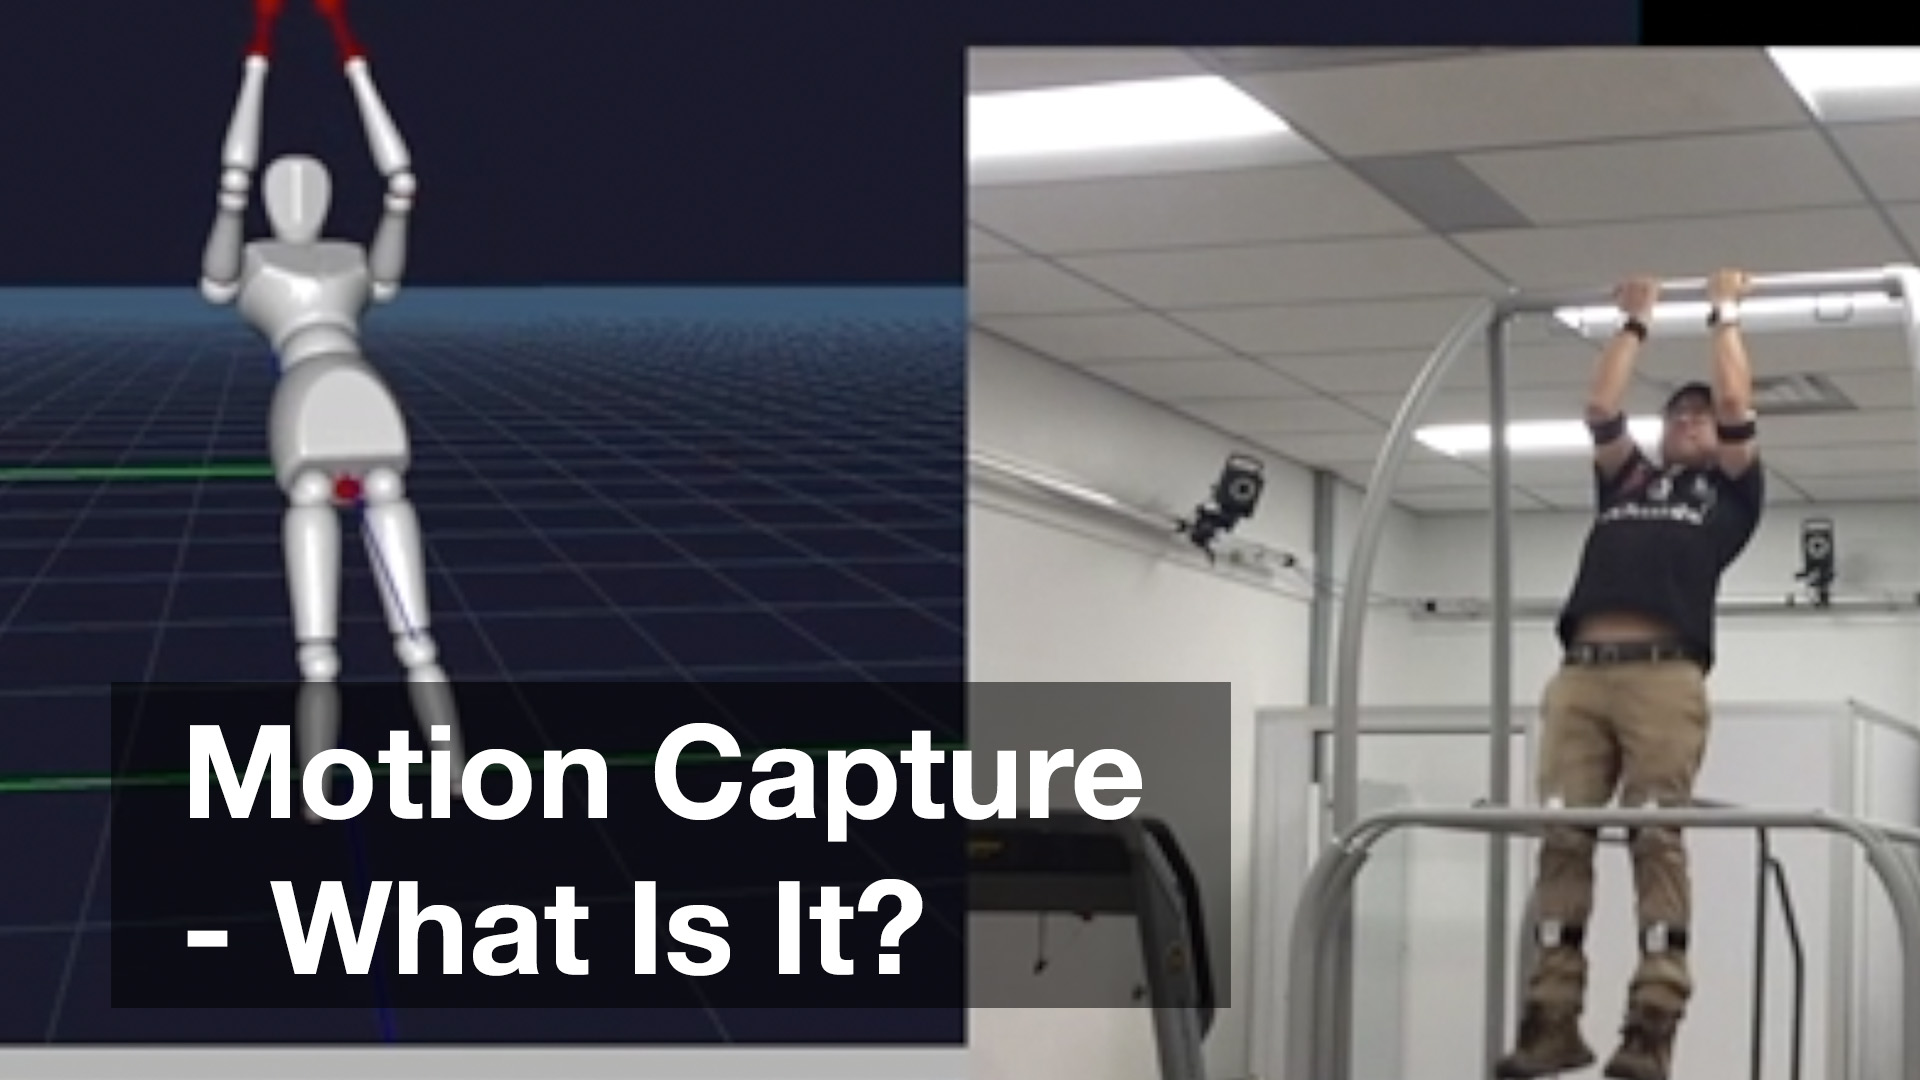 Motion Capture - What is it?